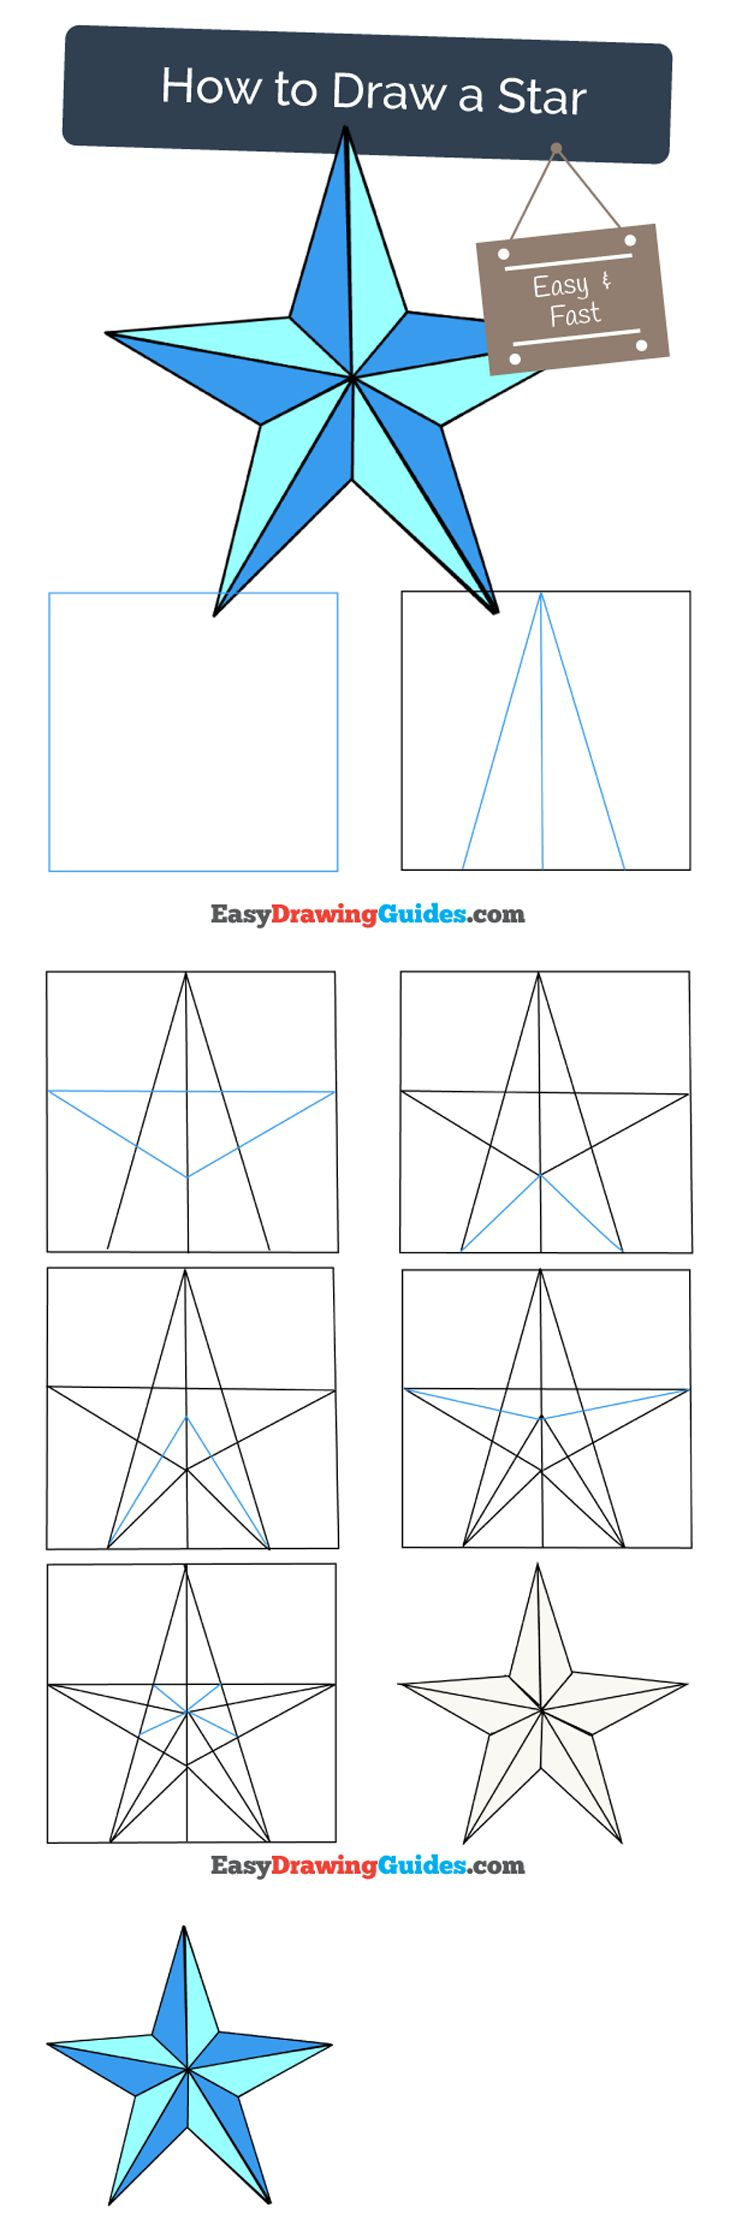 736x2219 How To Draw A Star Spiderman, Drawings And Tutorials